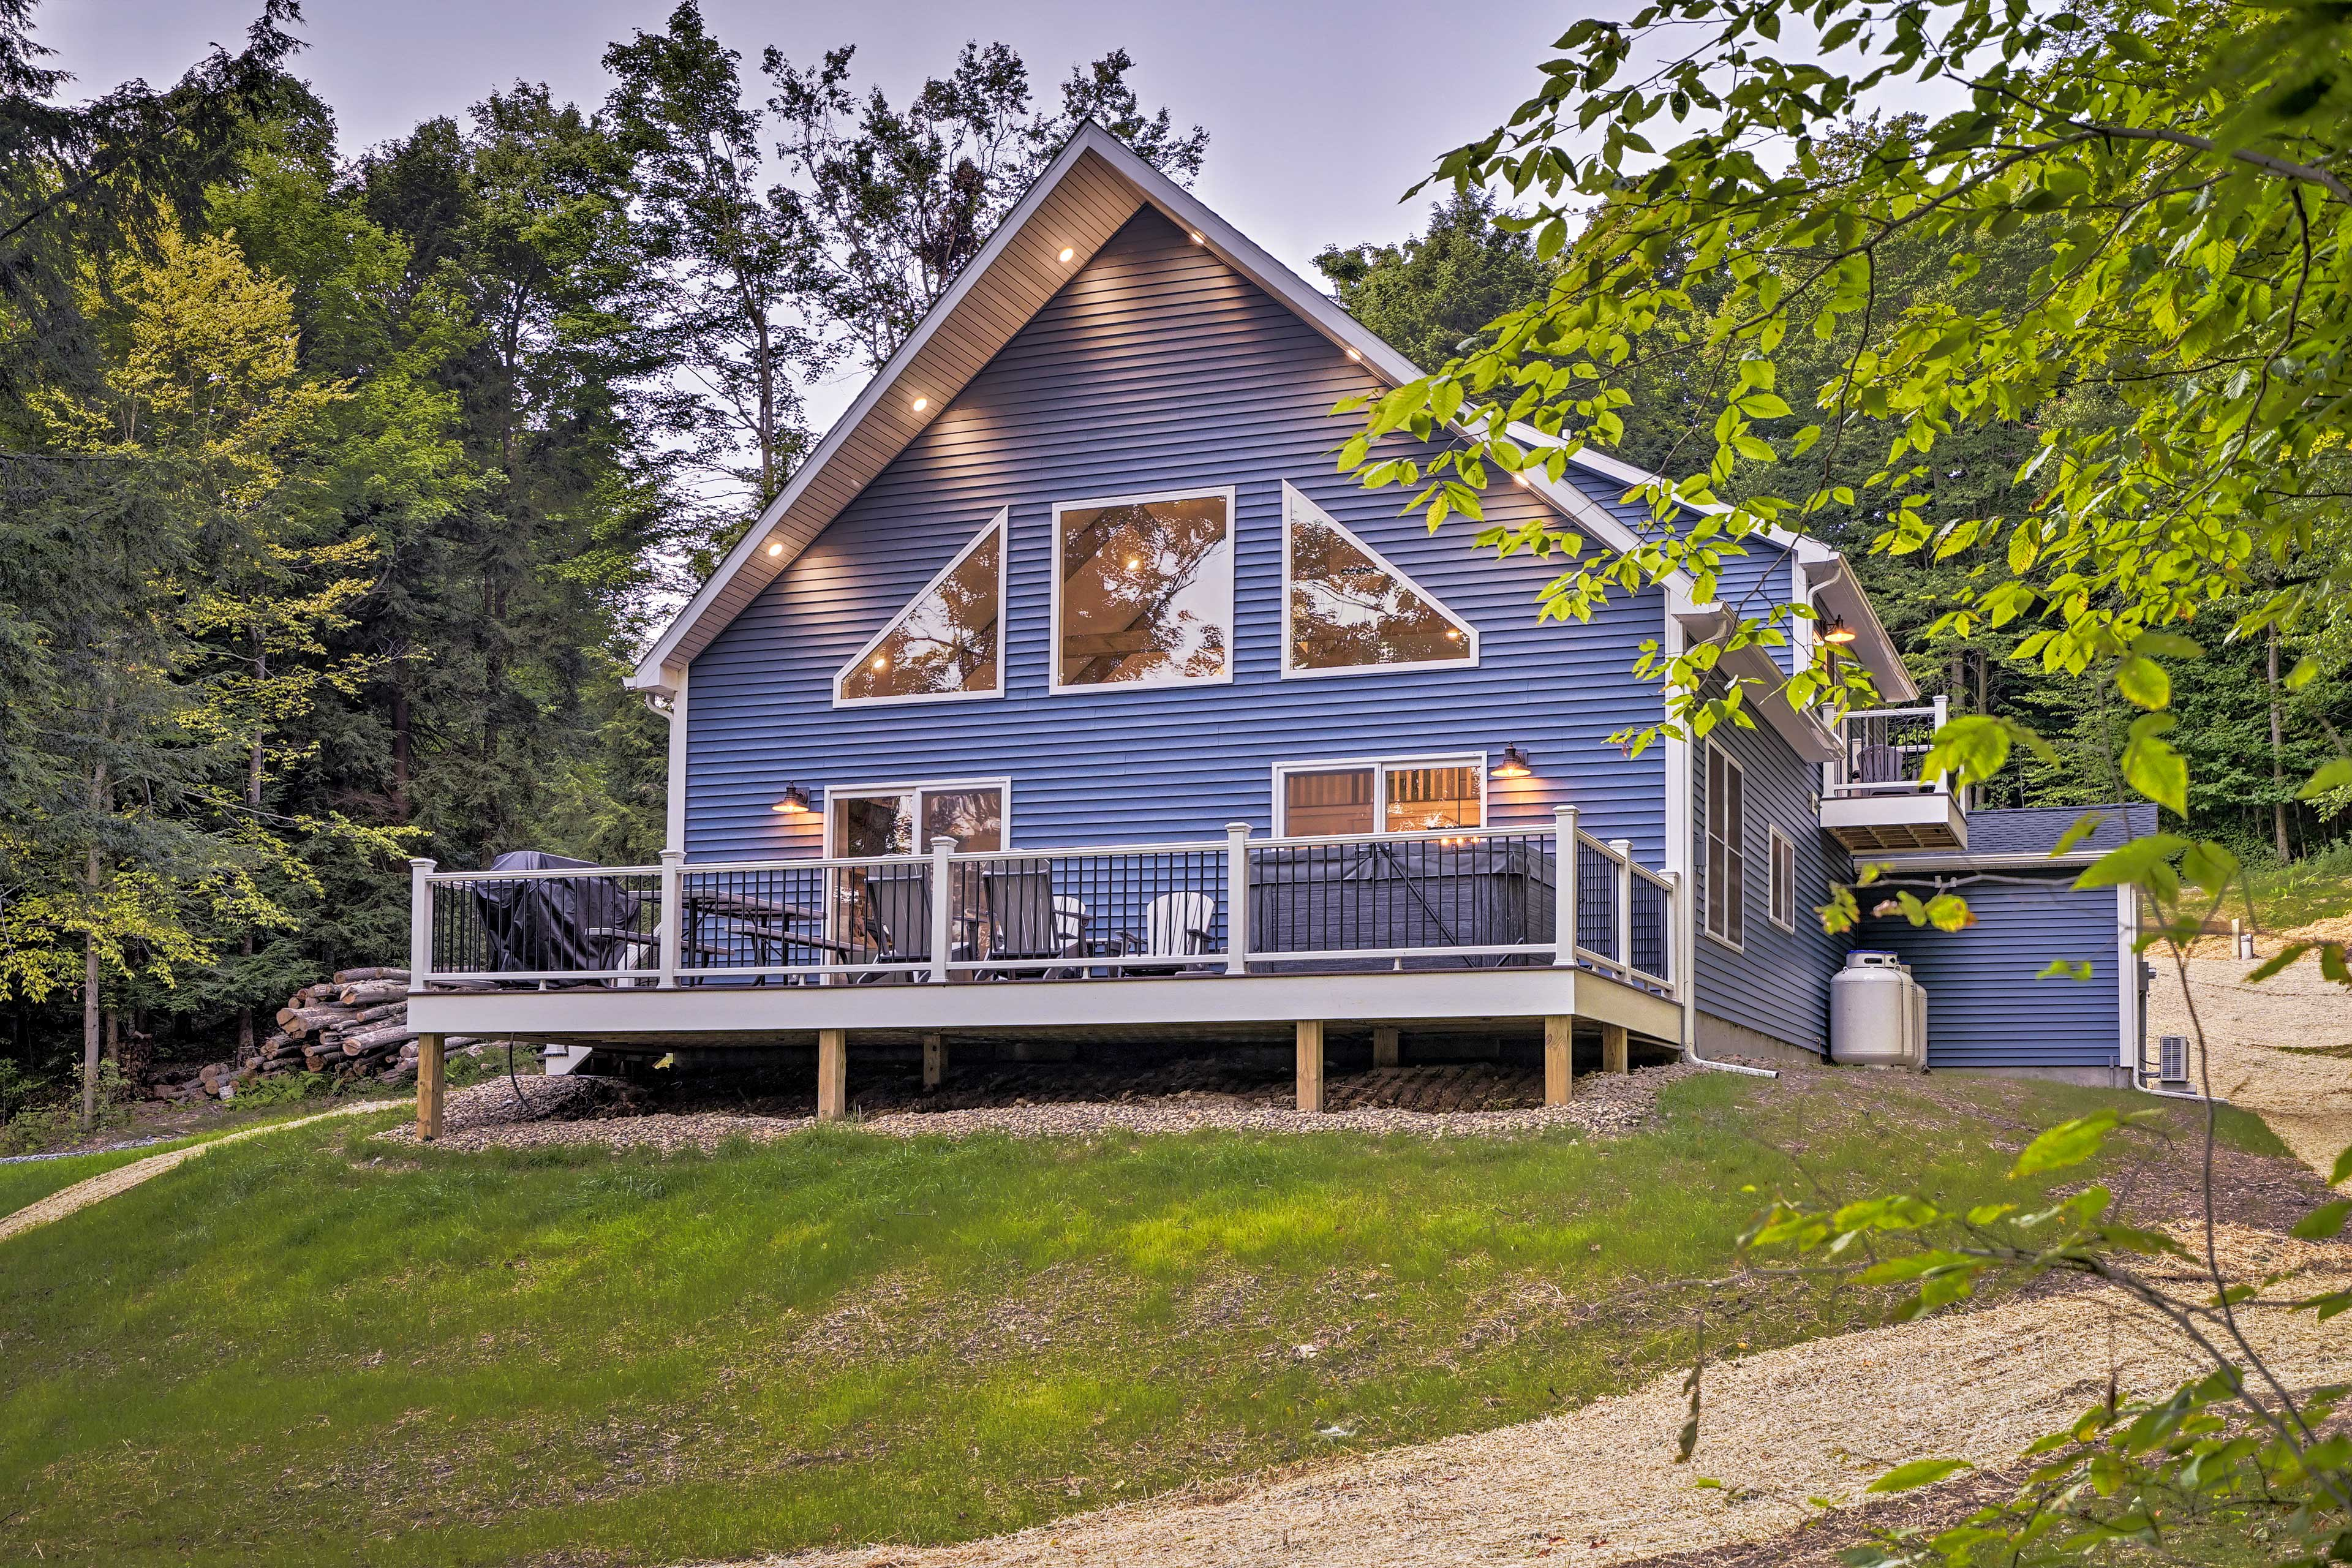 The deck is loaded with amenities including a hot tub, grill, and dining area.